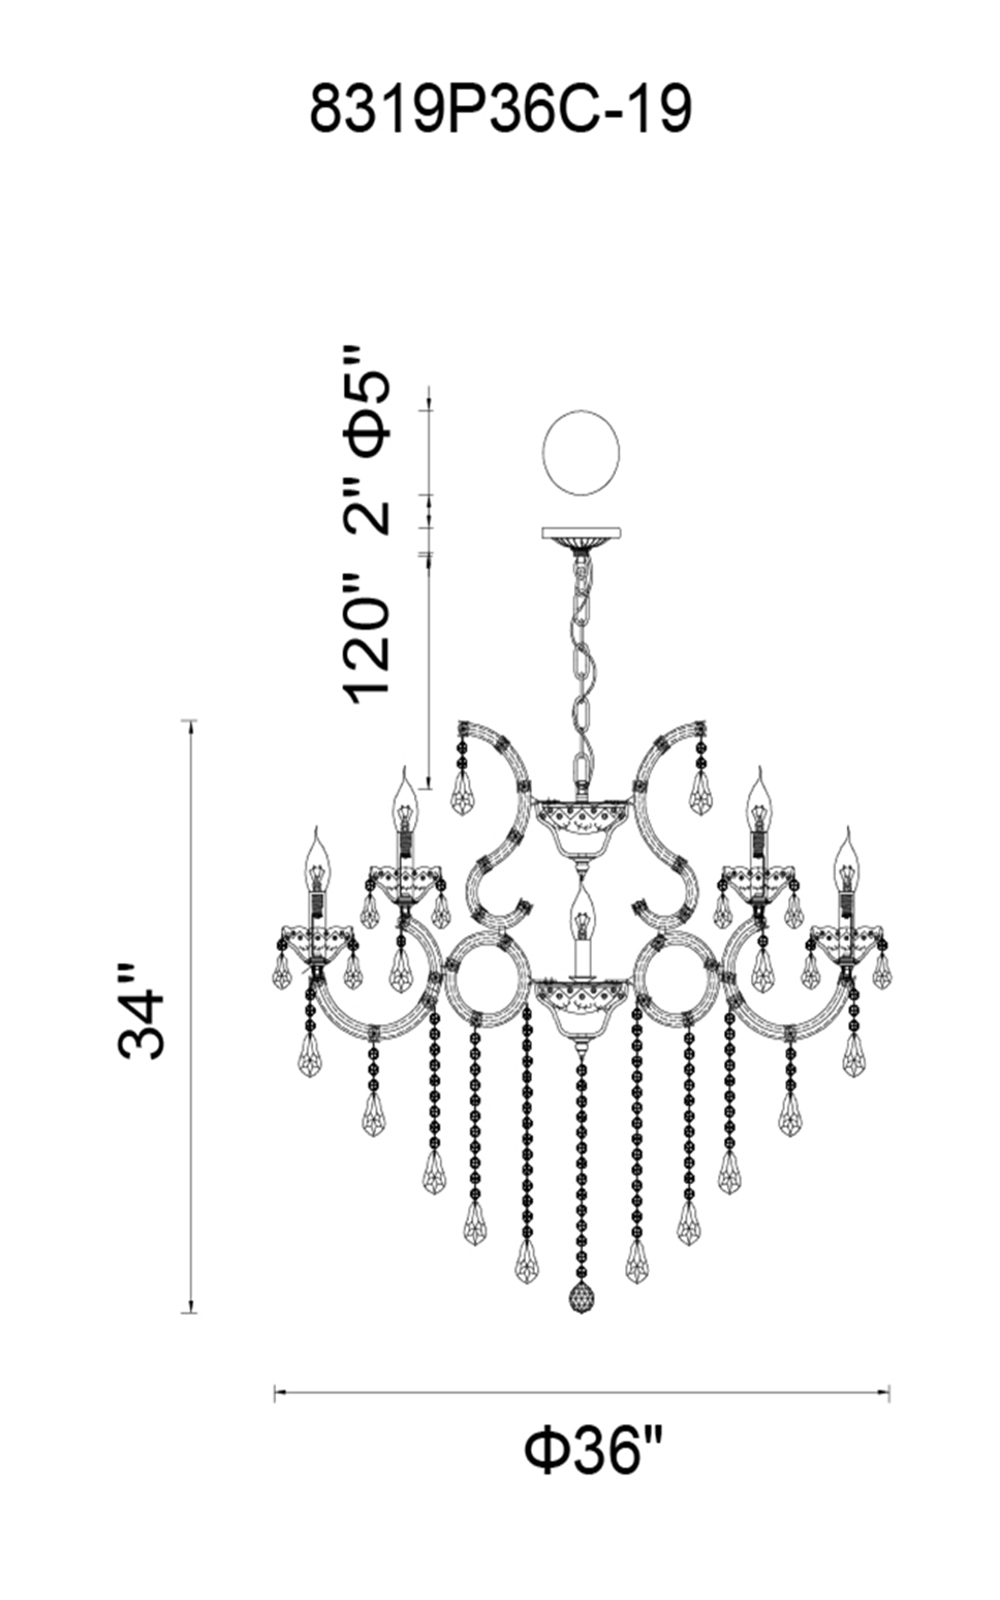 CWI Lighting Maria Theresa 19 Light Up Chandelier With Chrome Finish Model: 8319P36C-19 (CLEAR) Line Drawing